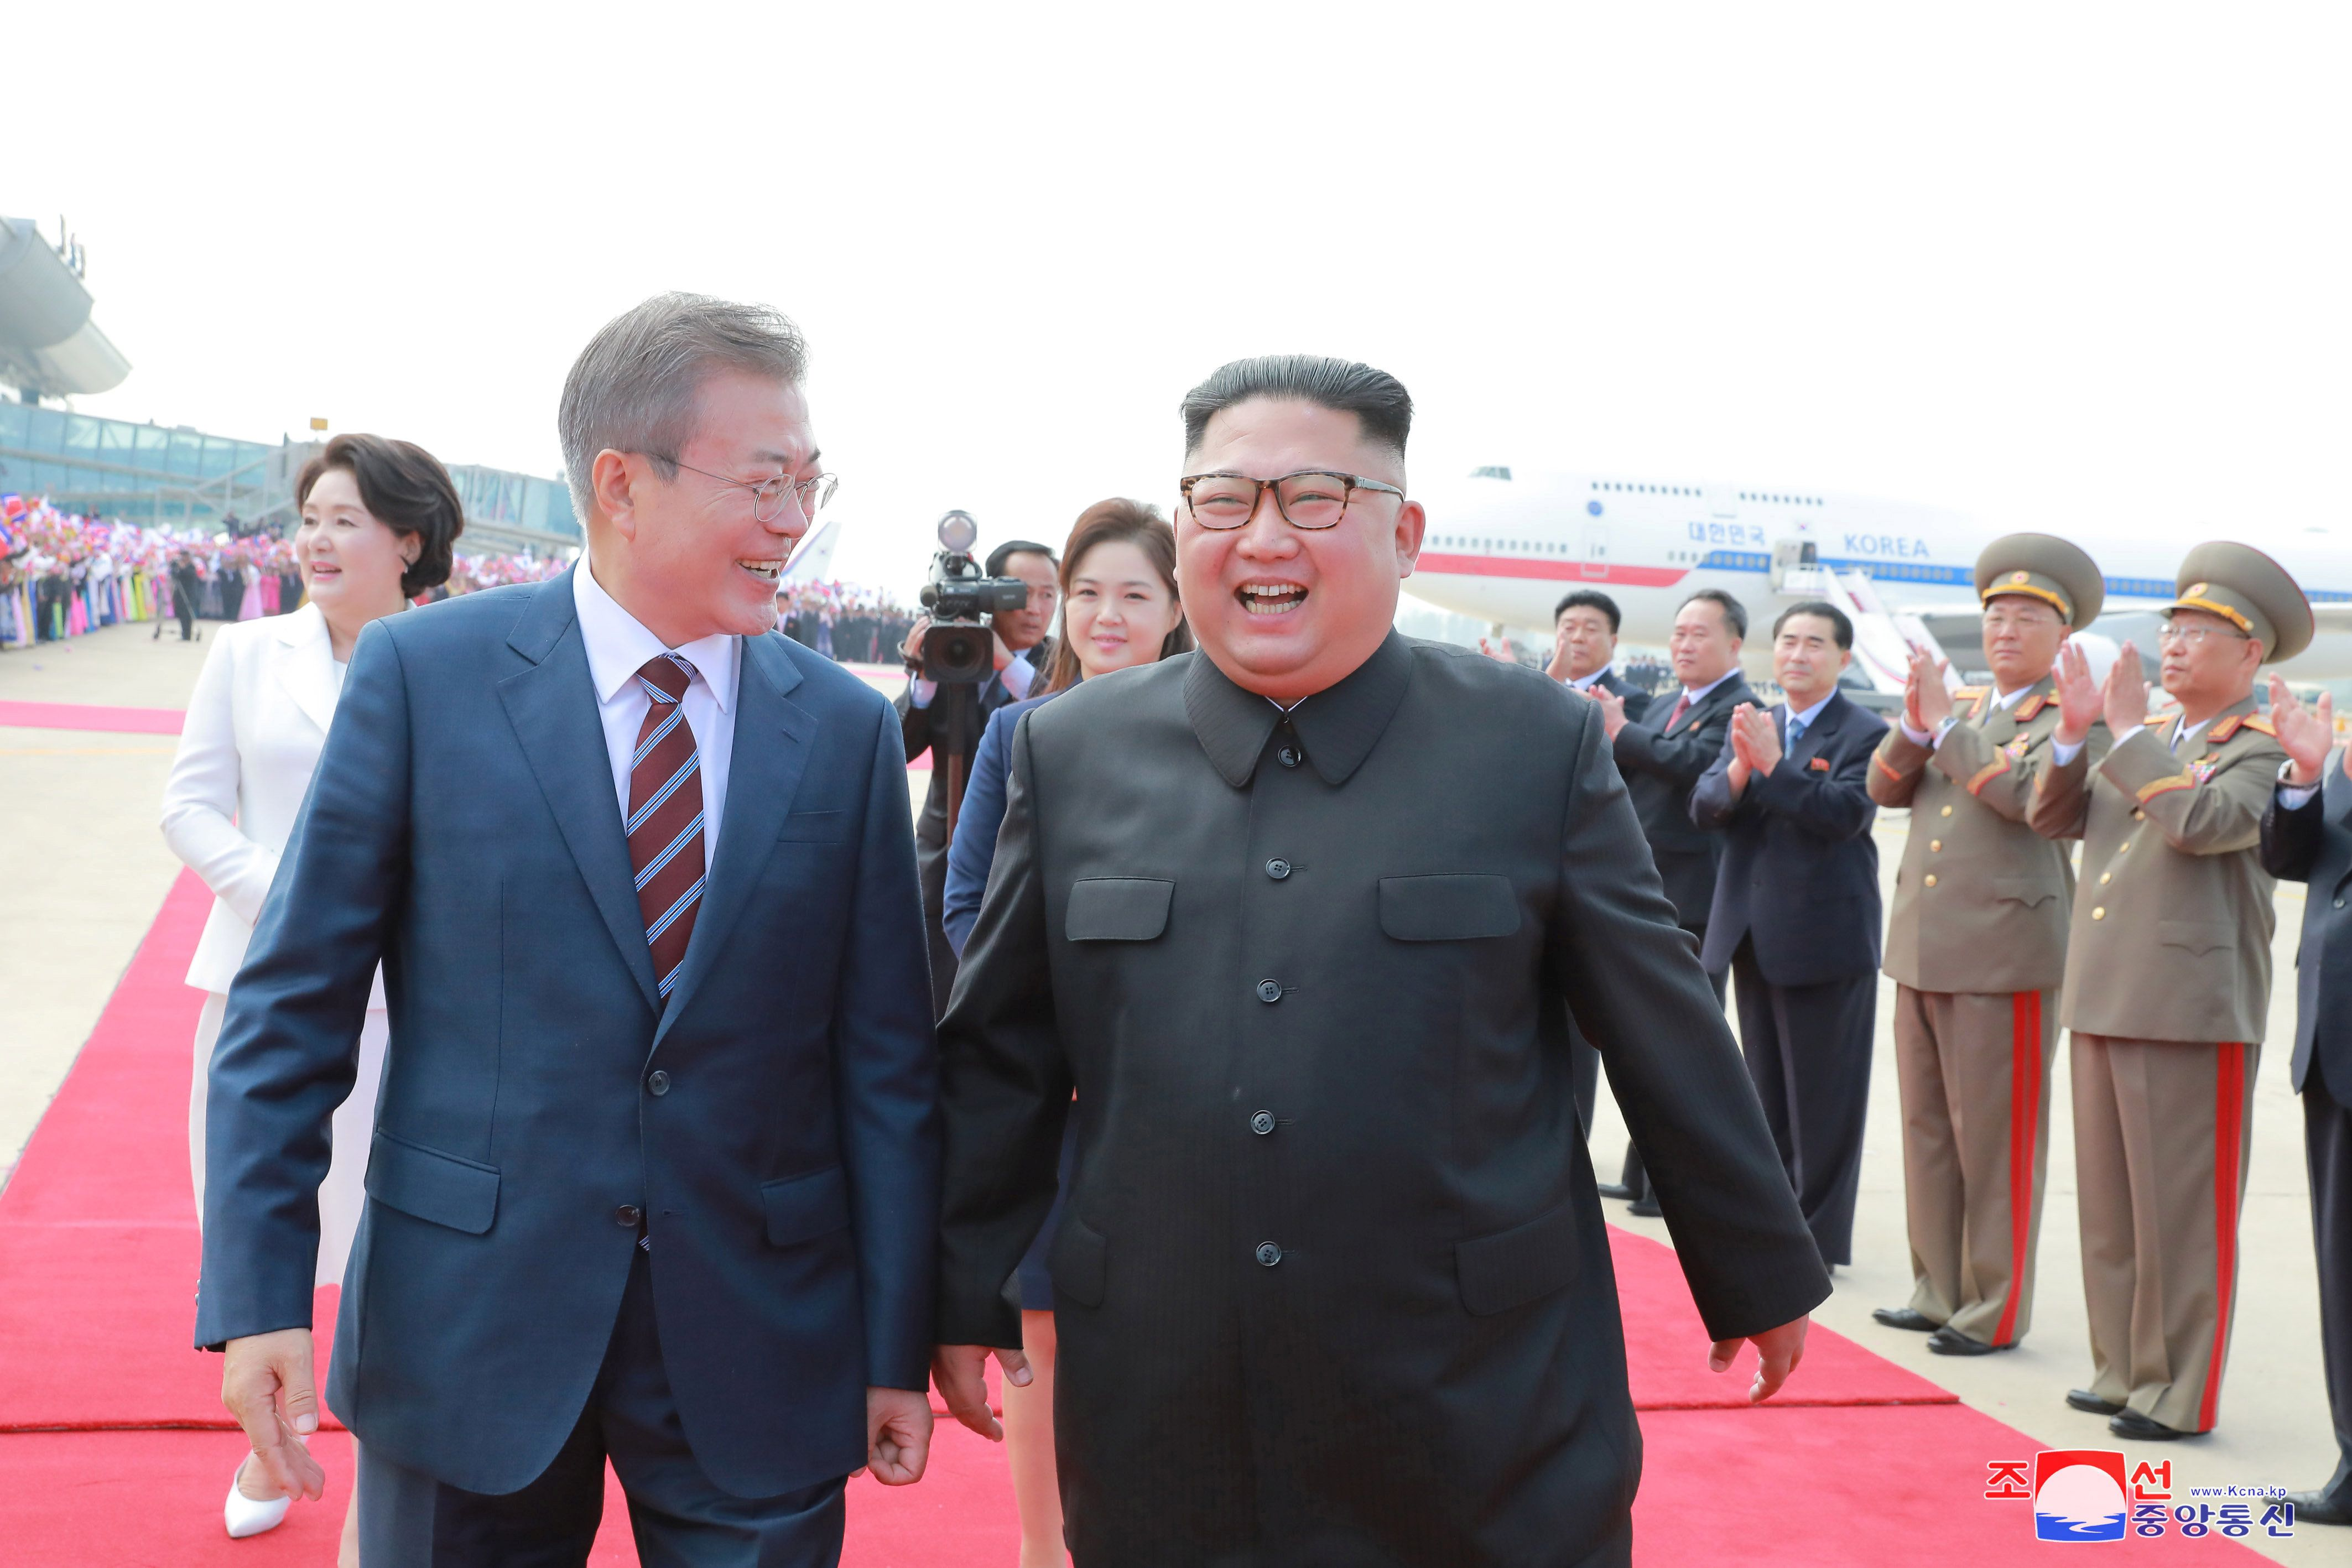 South Korean President Moon Jae-in and North Korean leader Kim Jong Un said they had discussed steps to rid the peninsula of